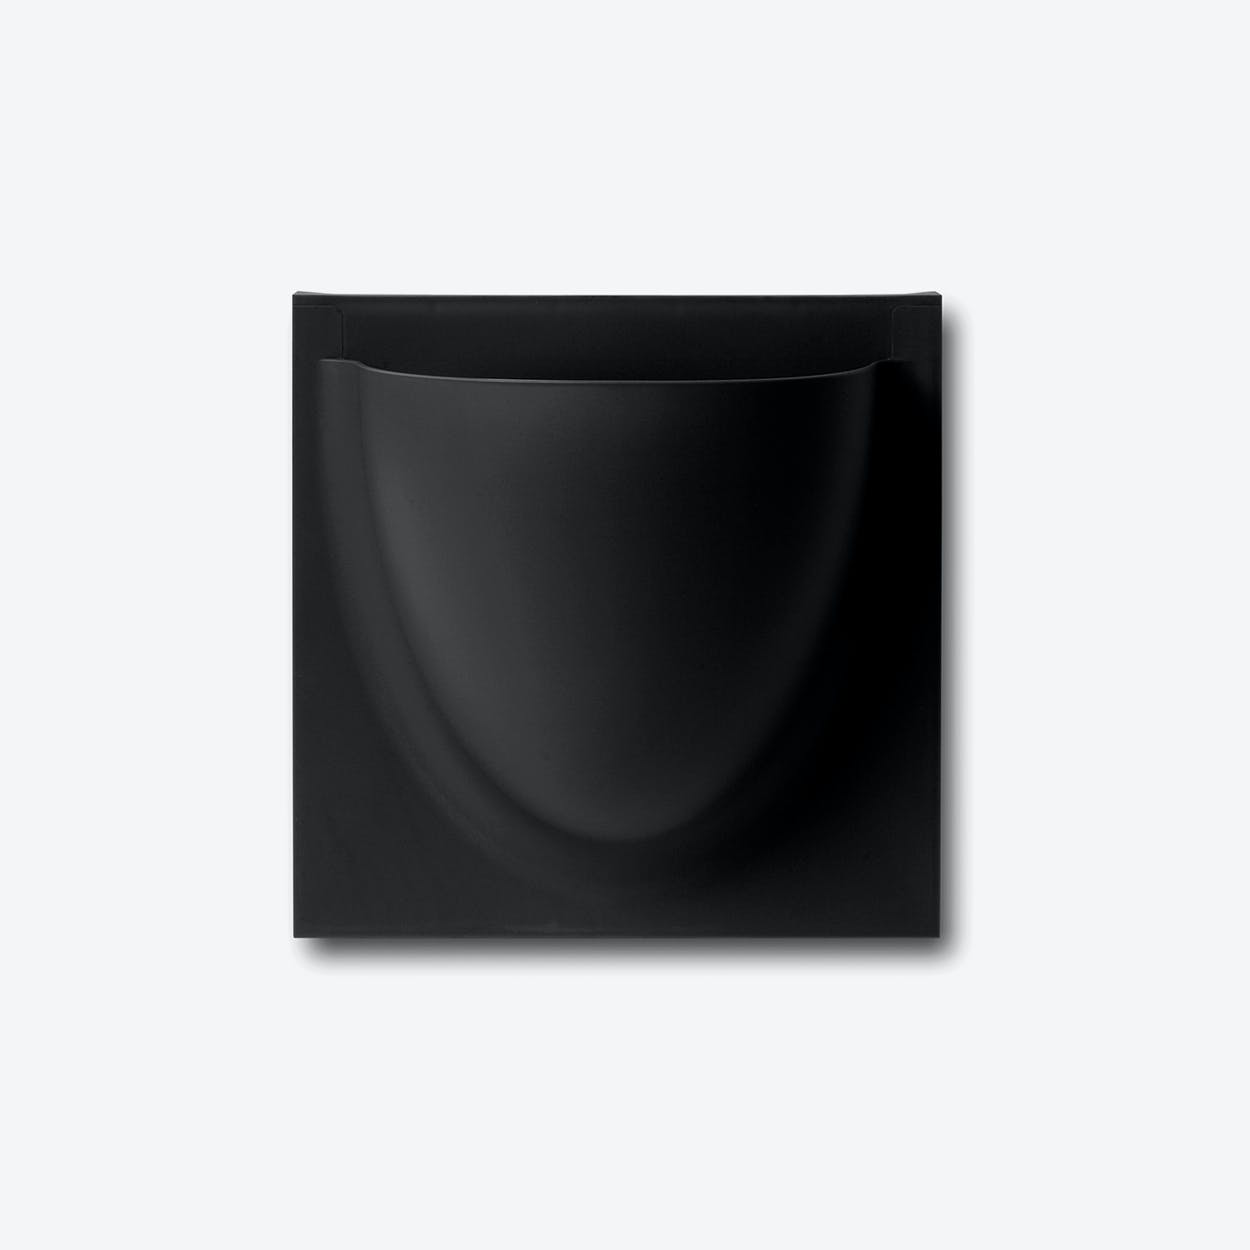 Wall Planter / Jar Mini in Black (Set of 2)